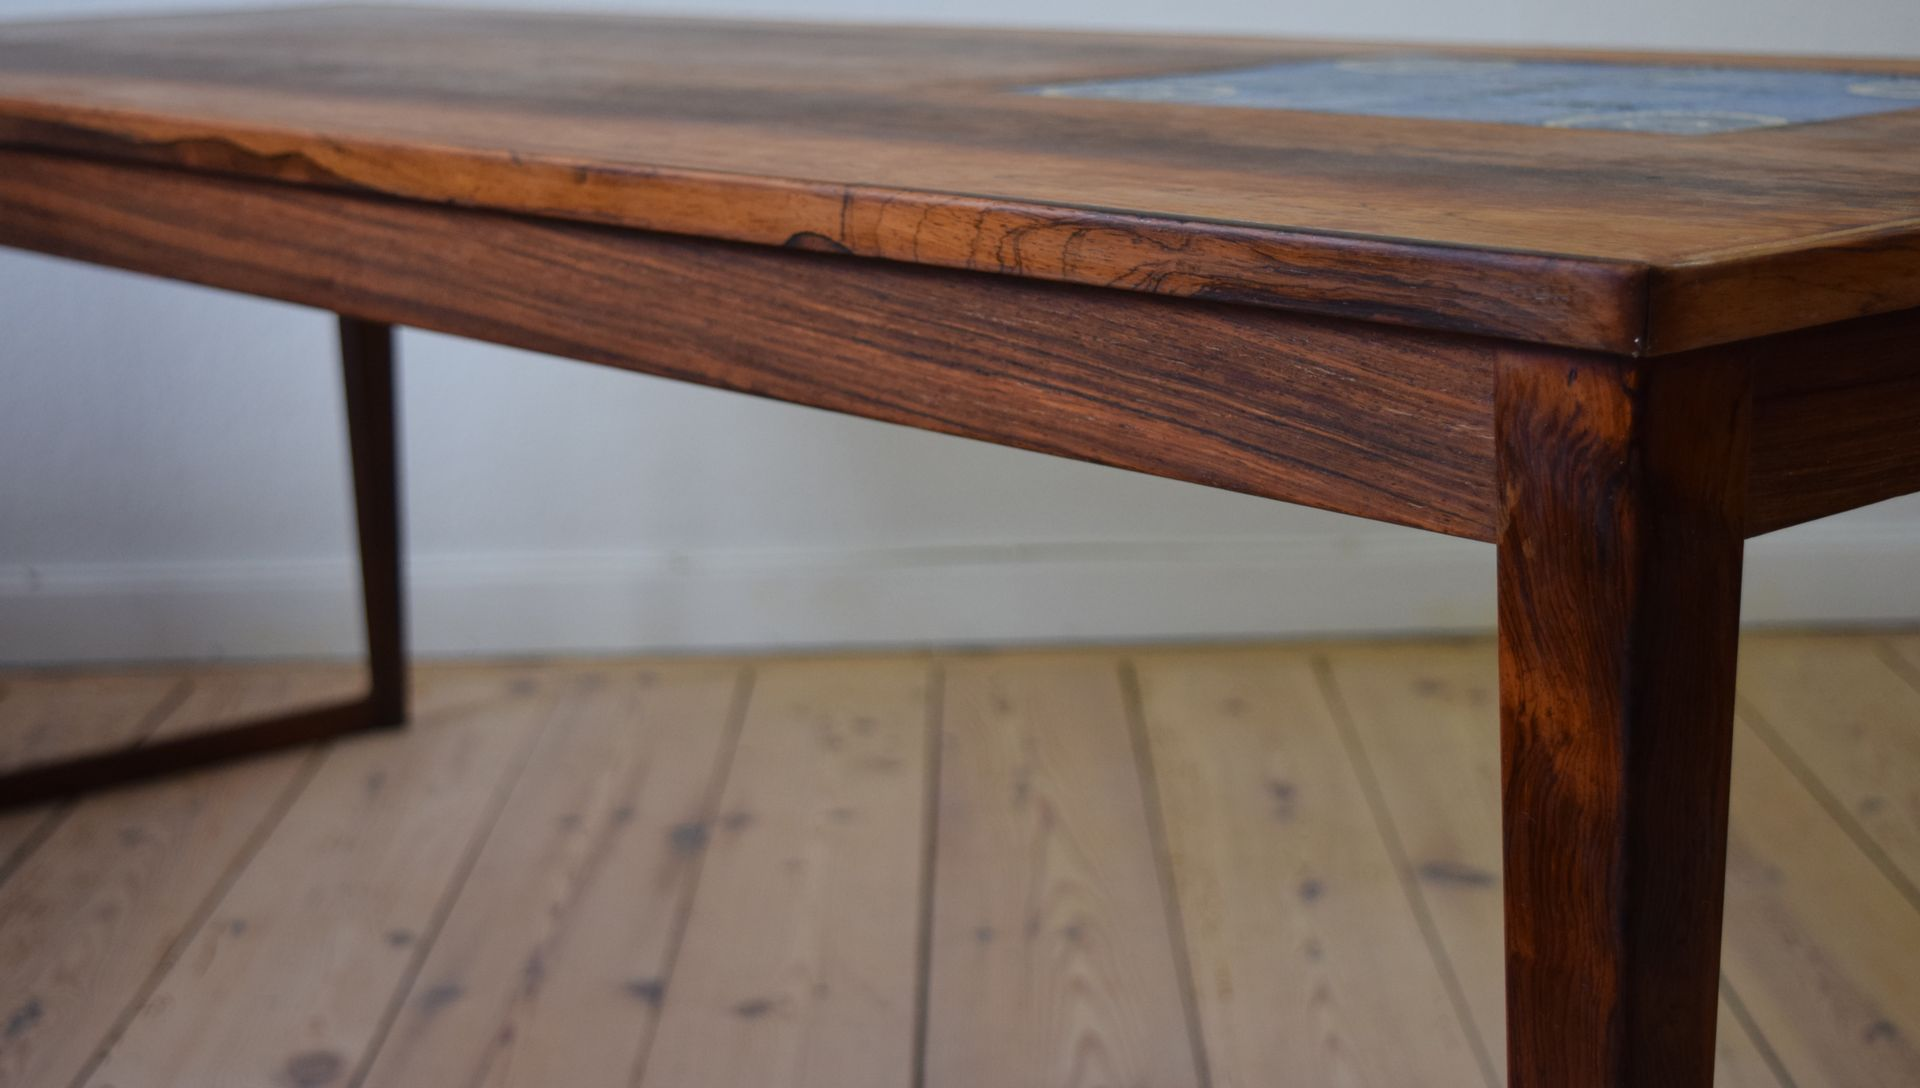 Danish Rosewood Coffee Table 1960s 10 1 059 00 Price Per Piece